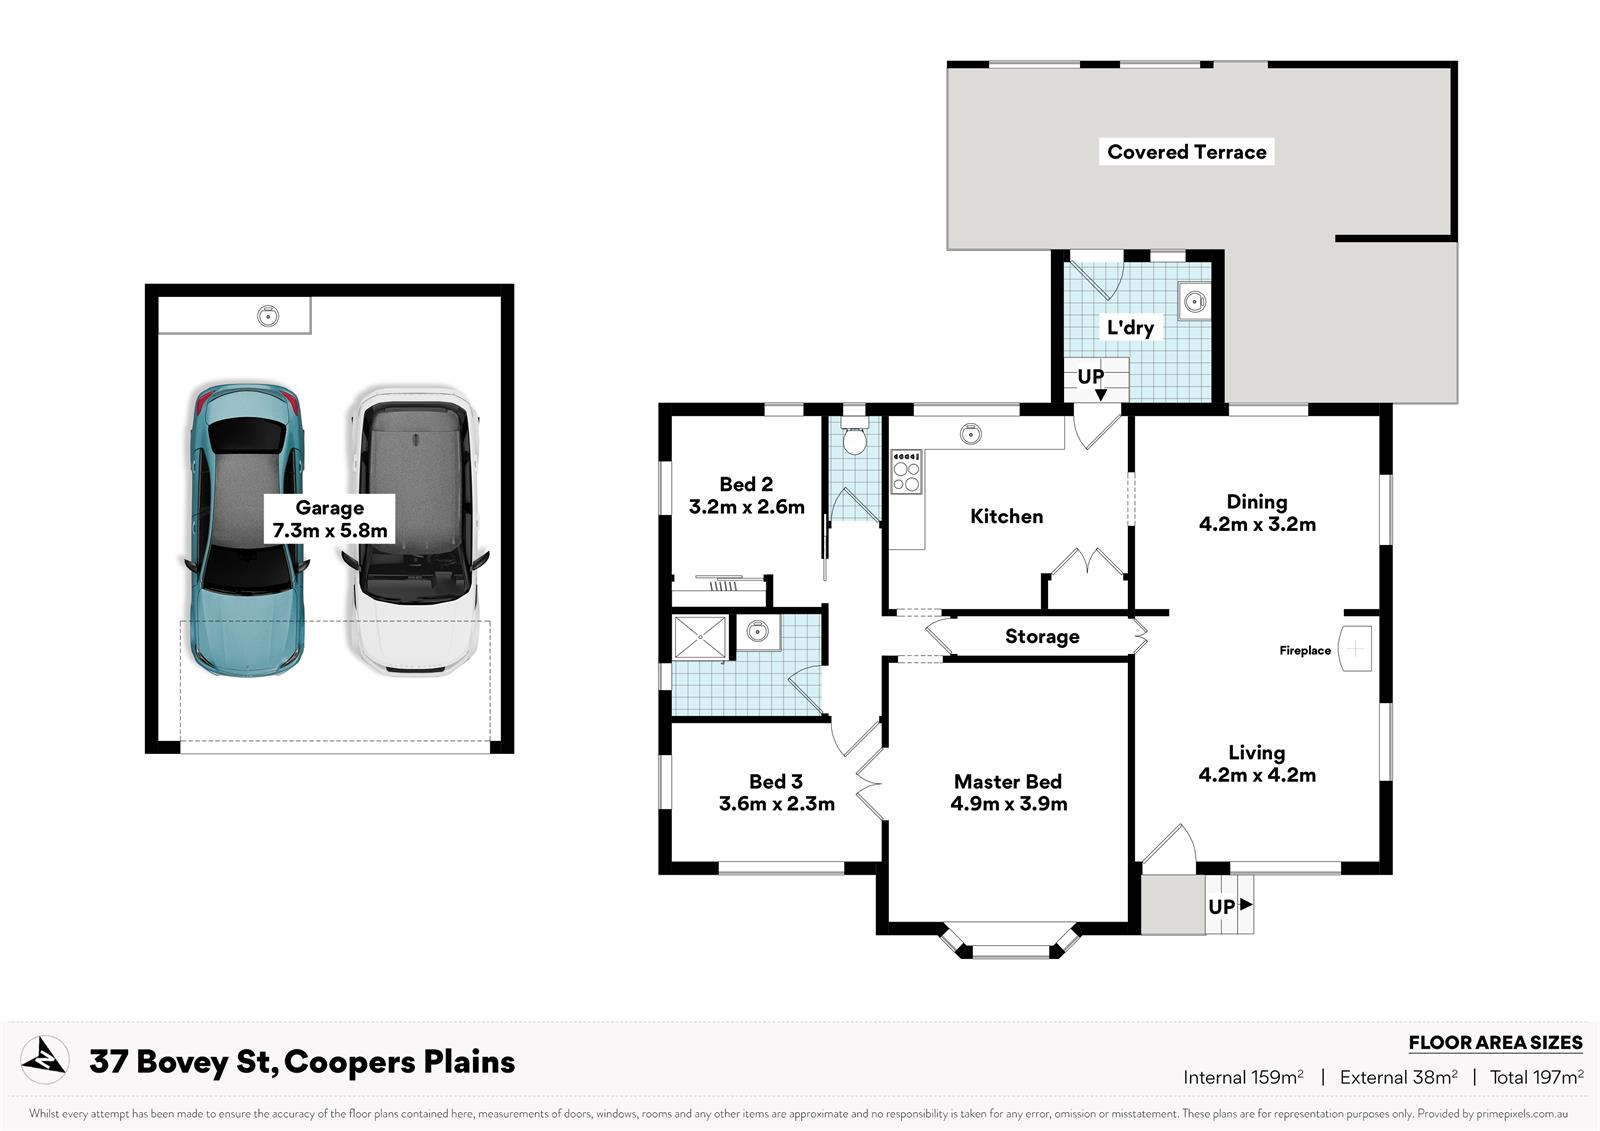 37 Bovey St COOPERS PLAINS QLD 4108 Floorplan 1